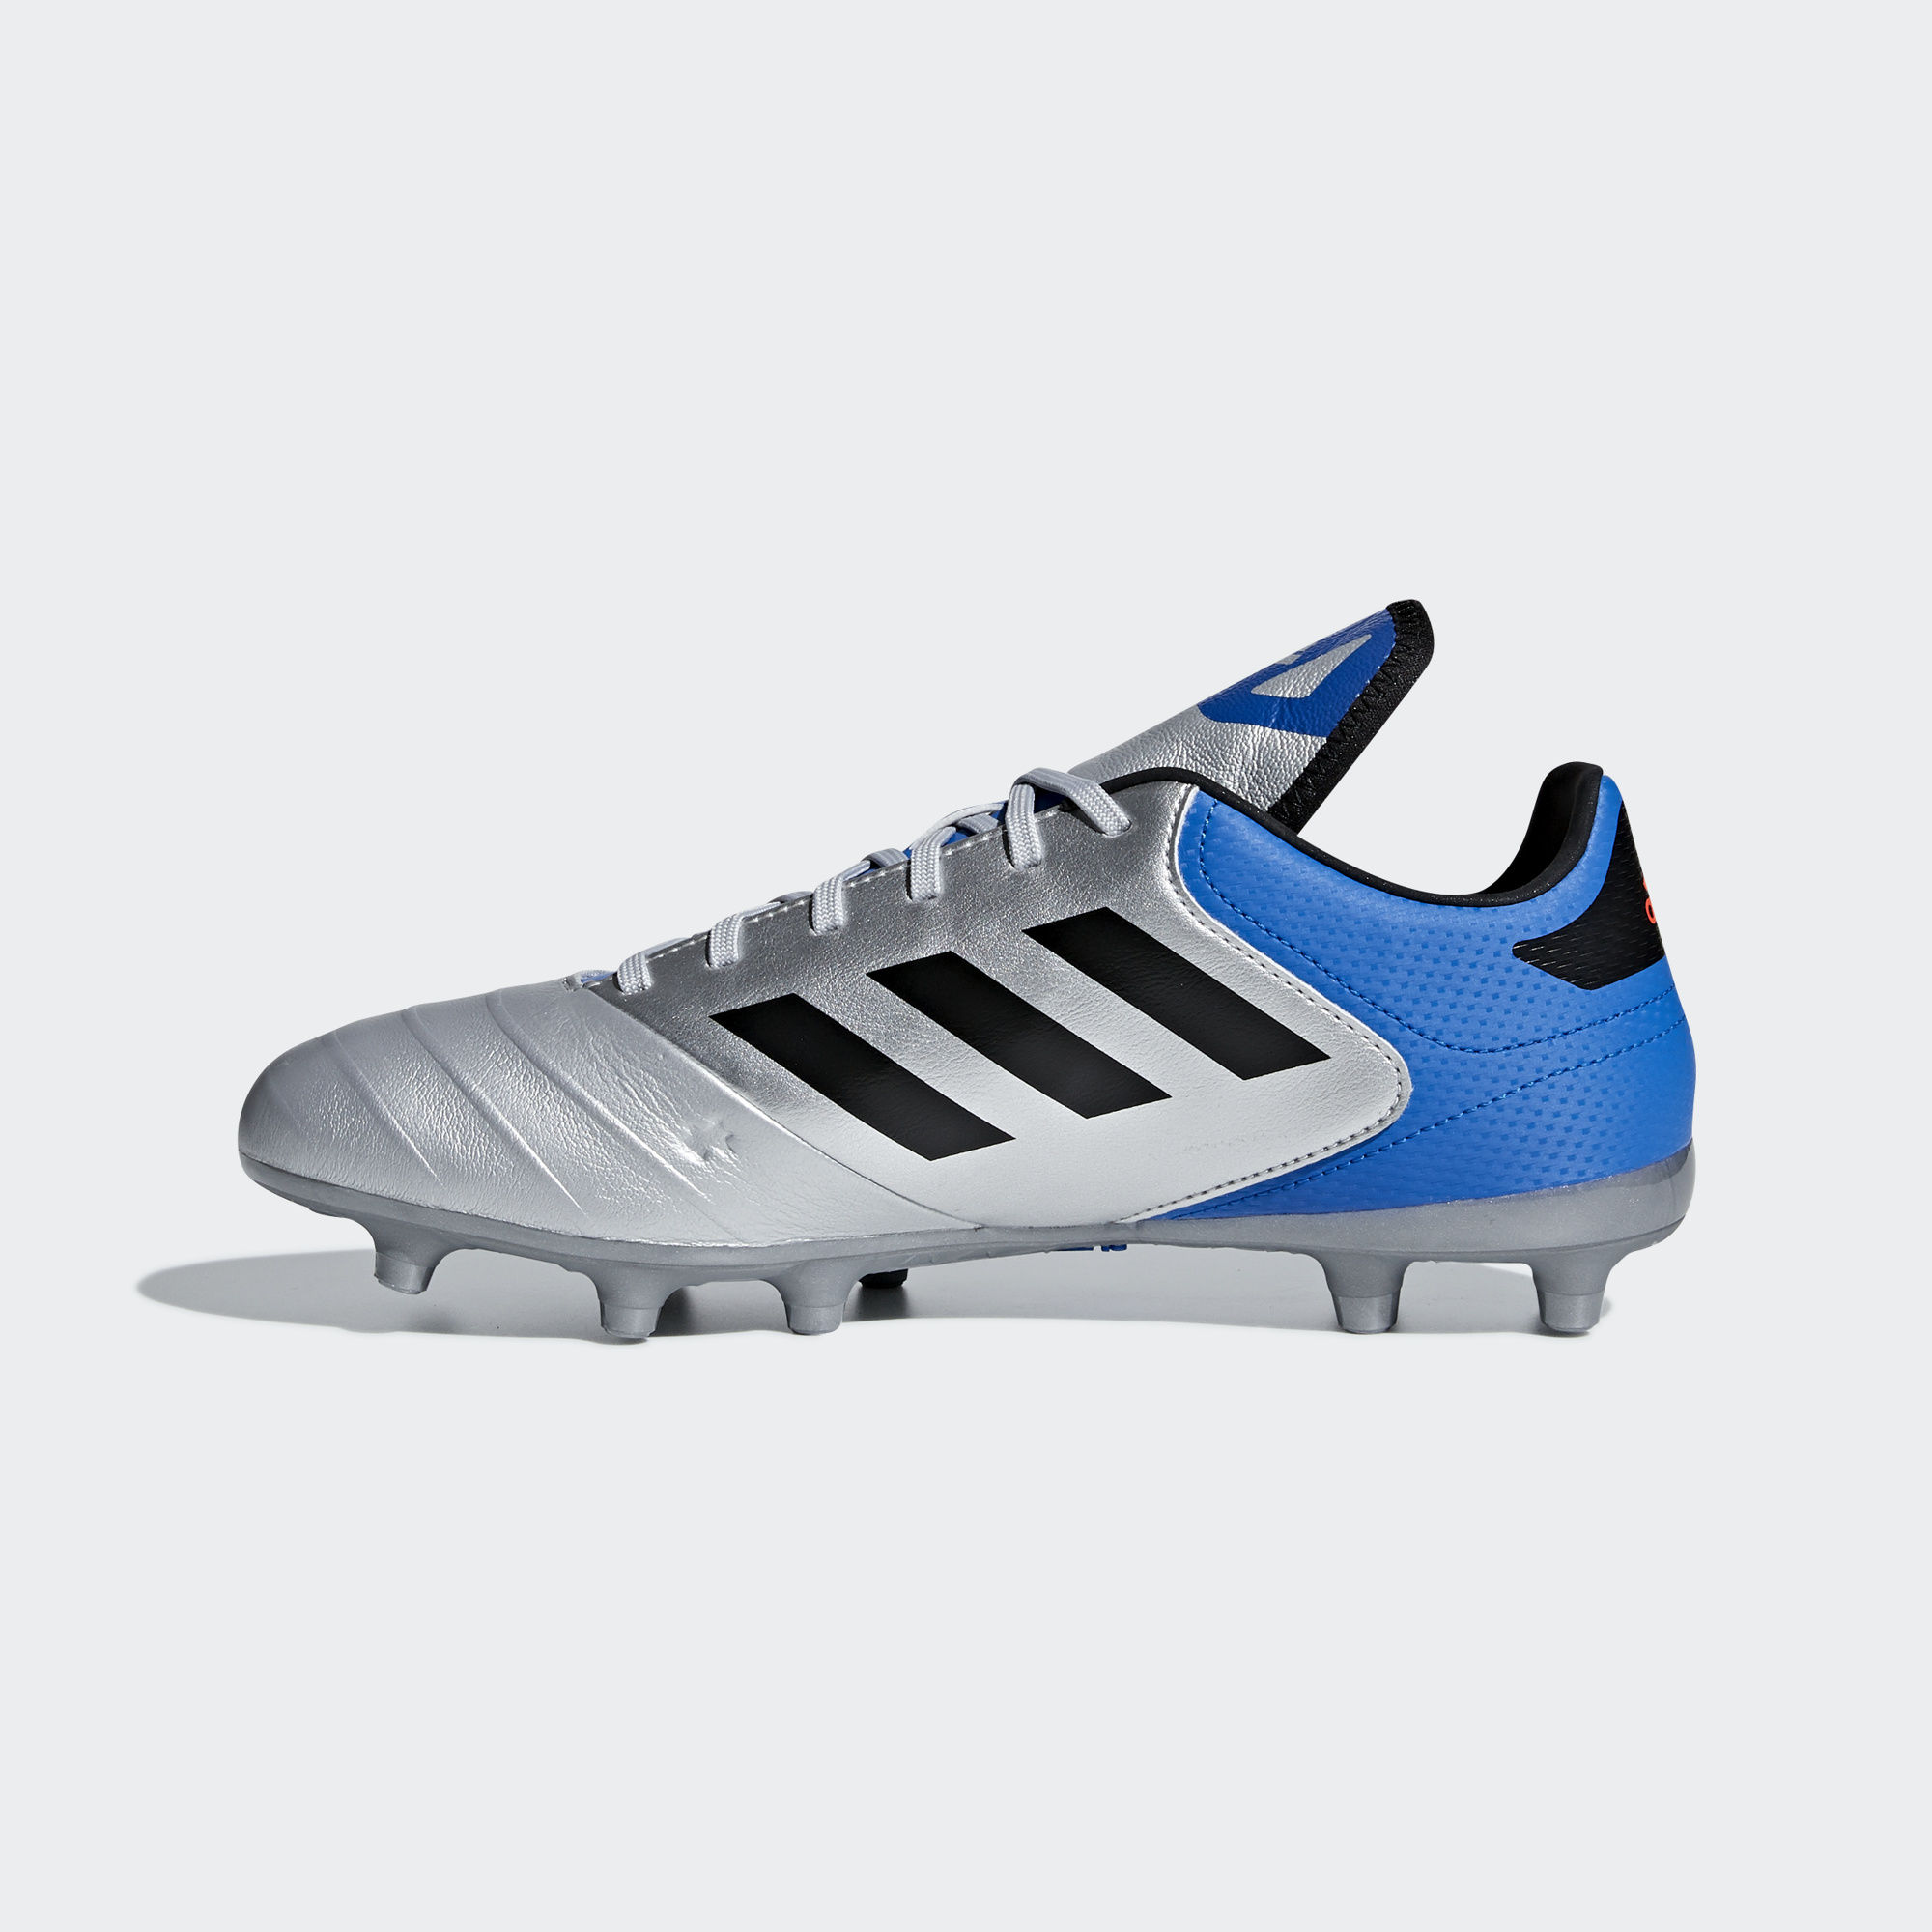 4cae9b389f8 Football boots shoes Adidas Cleats Copa Silver 18.3 FG 2018 Real ...